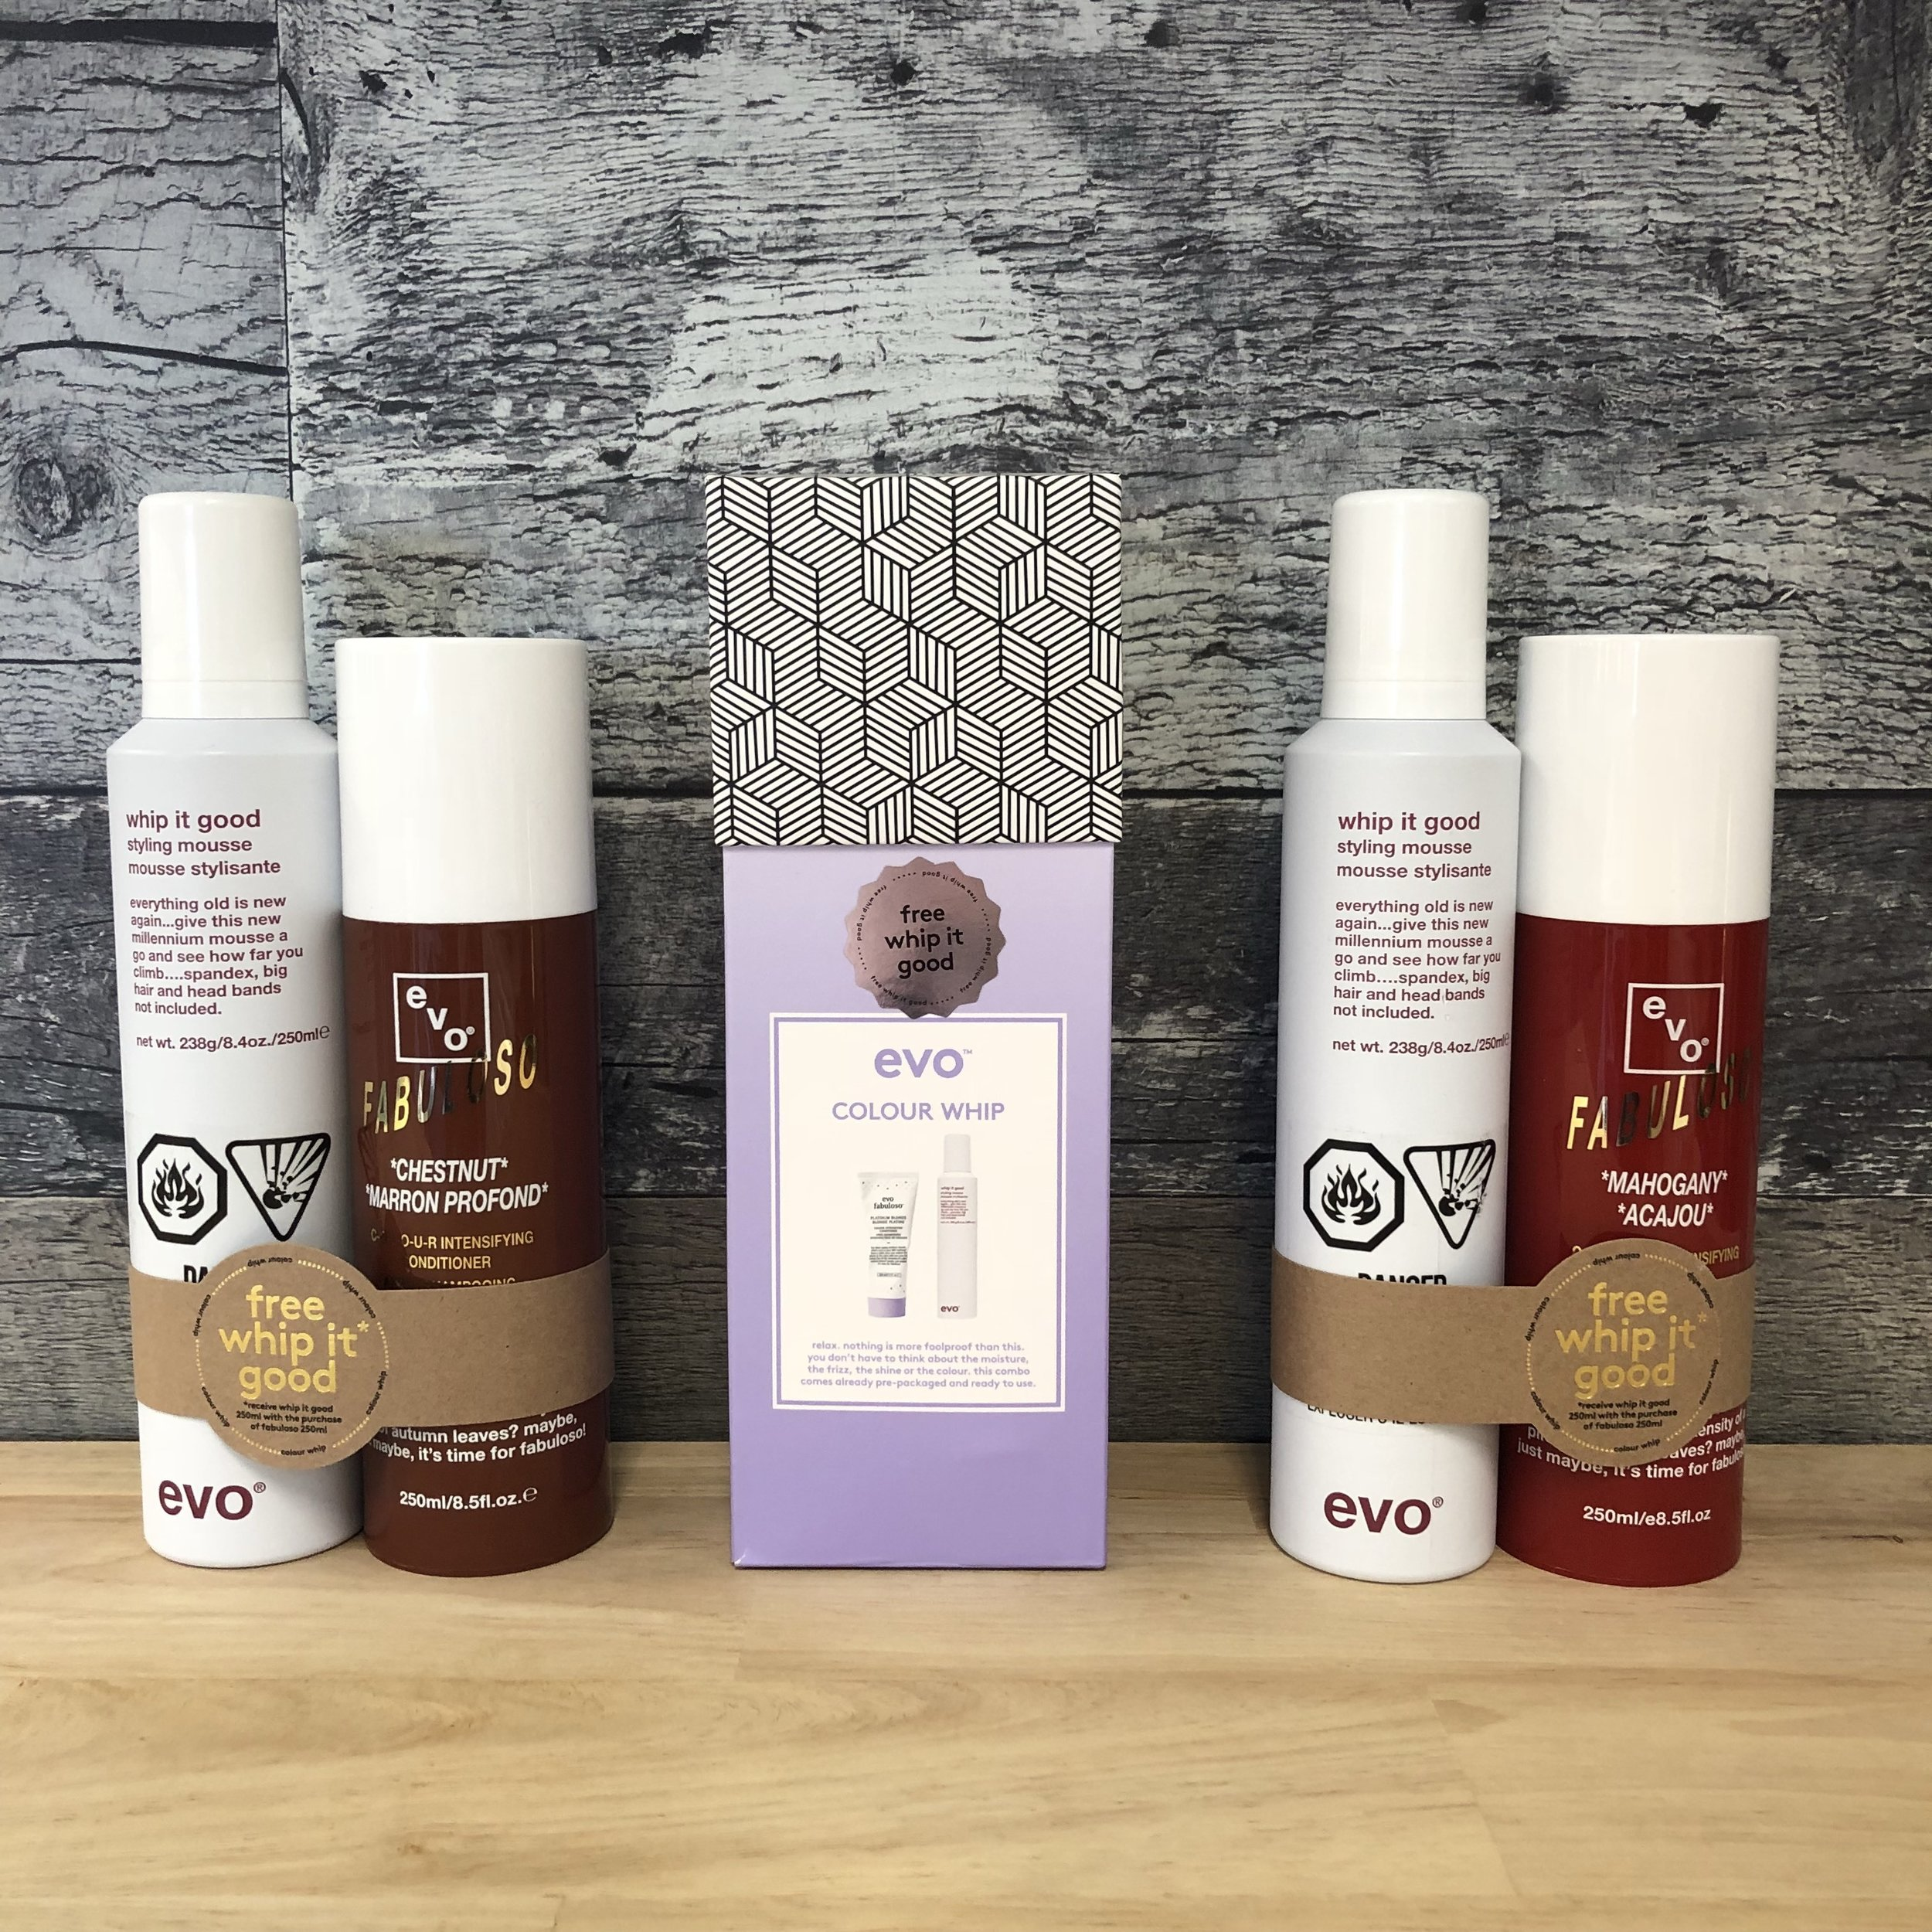 Fabuloso Packs - This must be the best deal we have this season. Buy an evo Fabuloso conditioner in Platinum, Mahogany, or Chestnut and receive a free evo Whip It Good styling mousse. If you don't know about the evo Fabuloso line, these are conditioners that have actual colour pigment in them so that when you wash your colour-treated hair, you re-tone it with the conditioner all from the comfort of your own shower. These conditioners can be key to making your colour last. The Whip It Good mousse is a rich moisturizing foam with high shine and low hold. Good for enhancing curls or waves, it also smooths by preventing frizz.